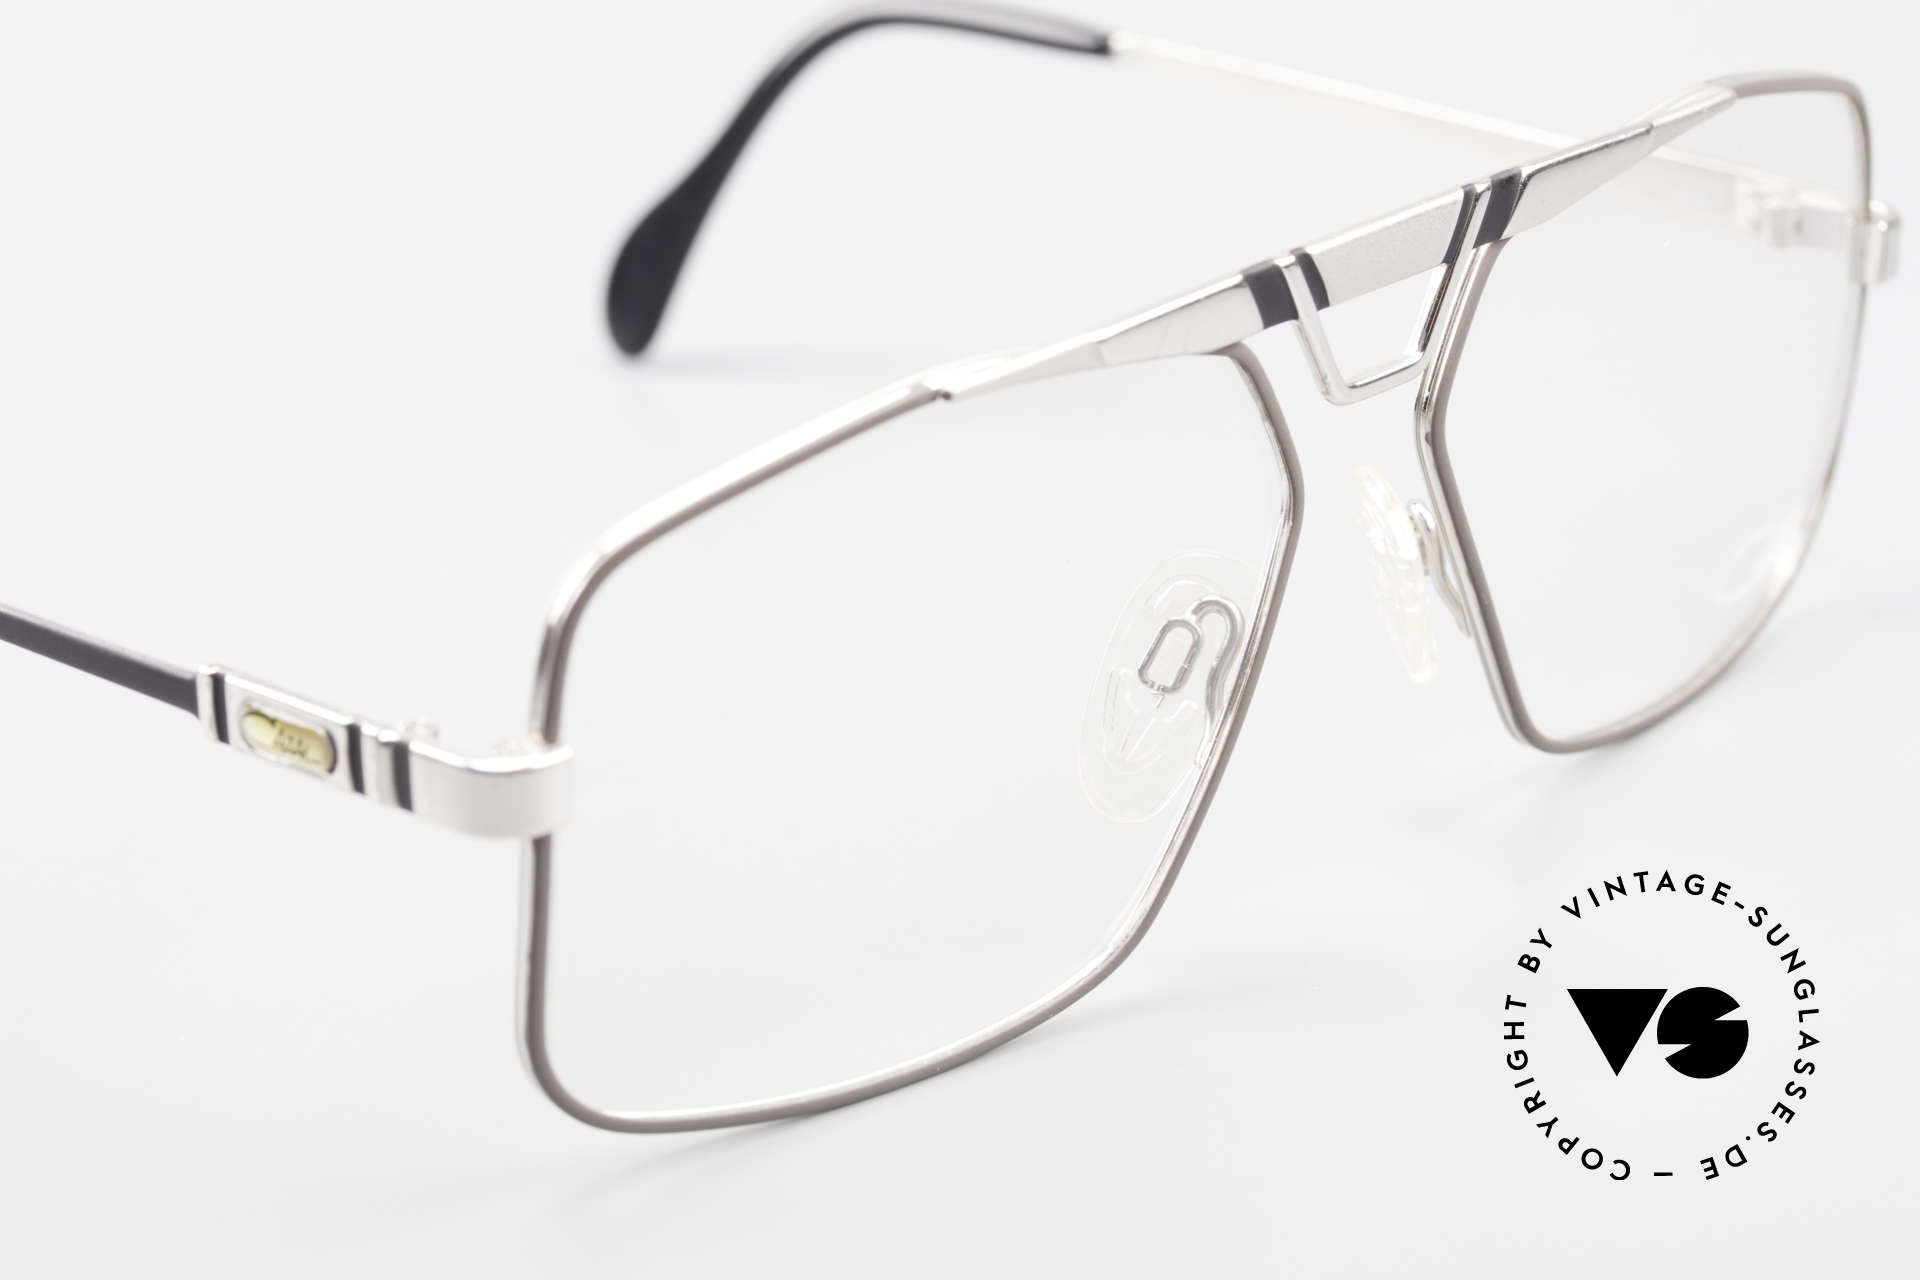 Cazal 735 Brad Pitt Glasses W Germany, NO retro fashion, but a unique 30 years old original, Made for Men